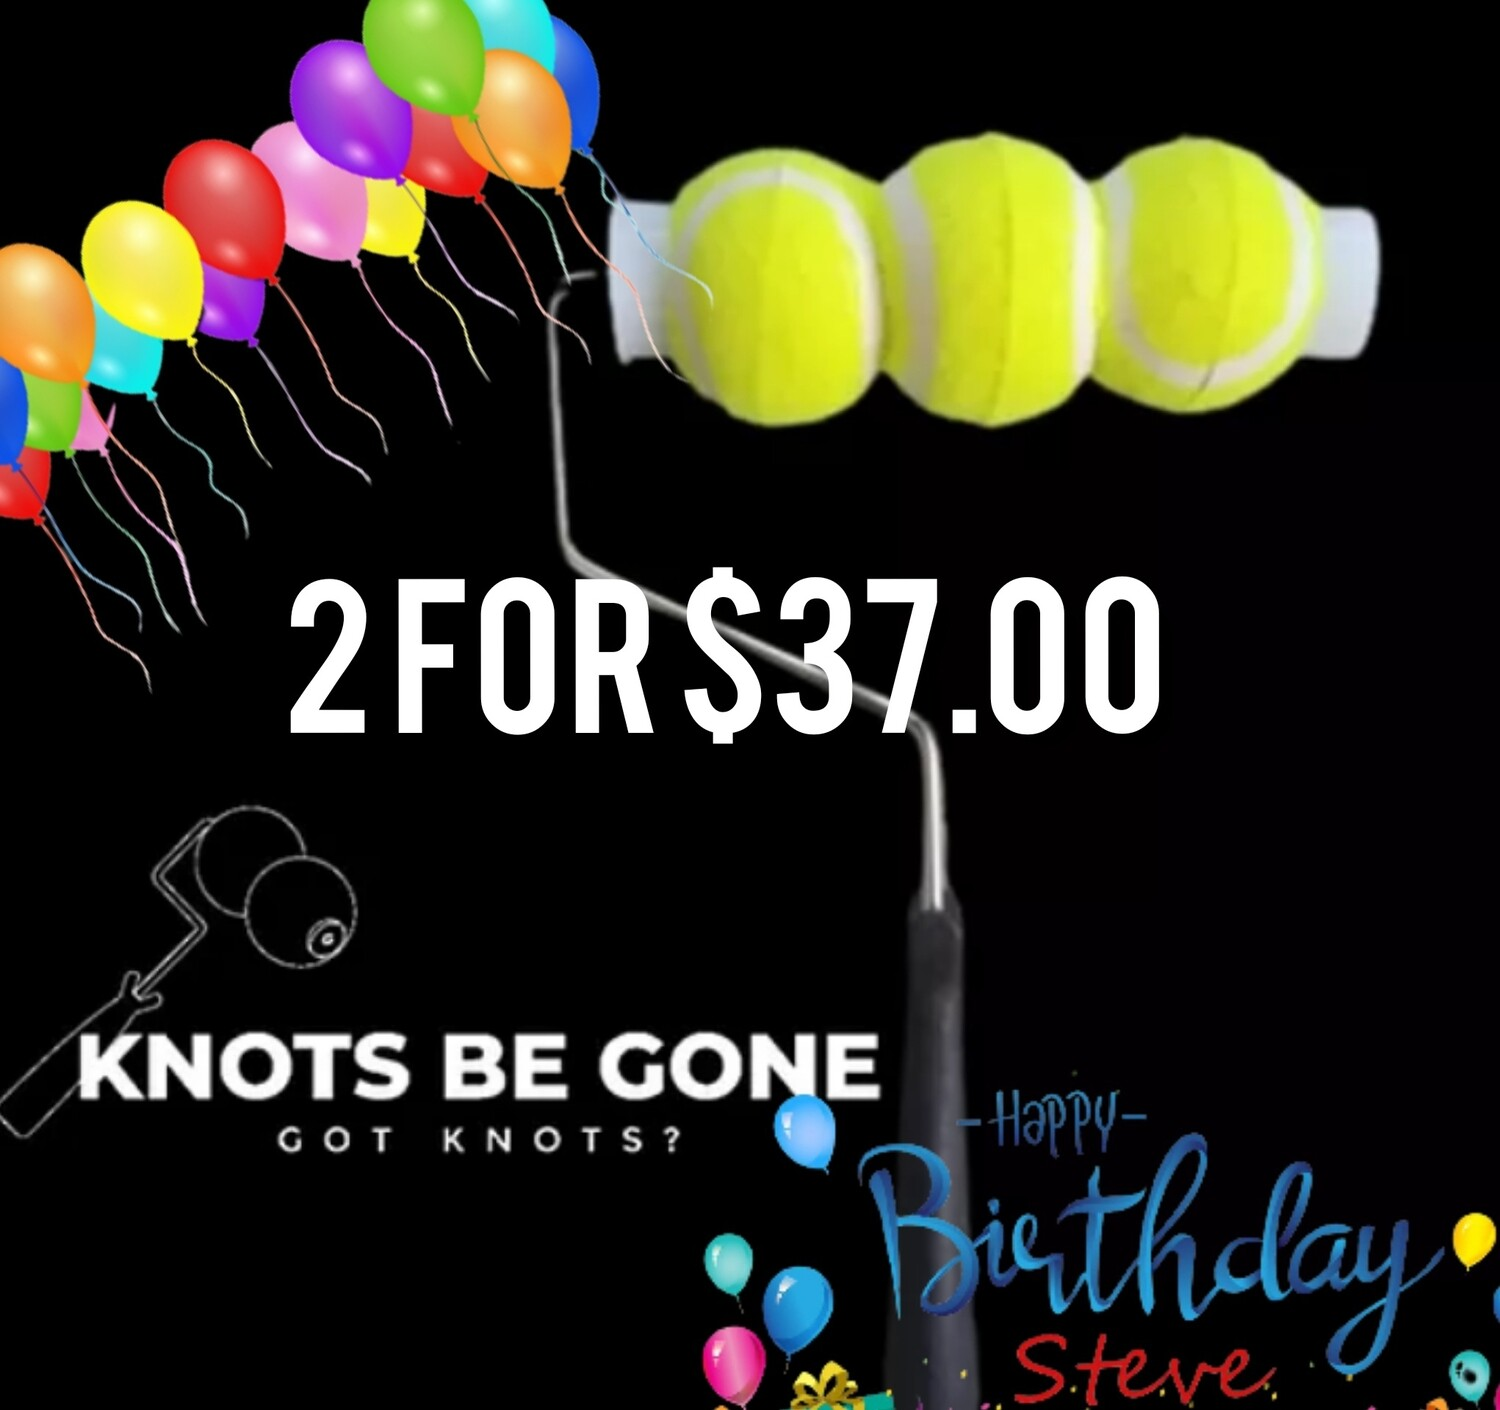 Knots Be Gone Birthday Deal